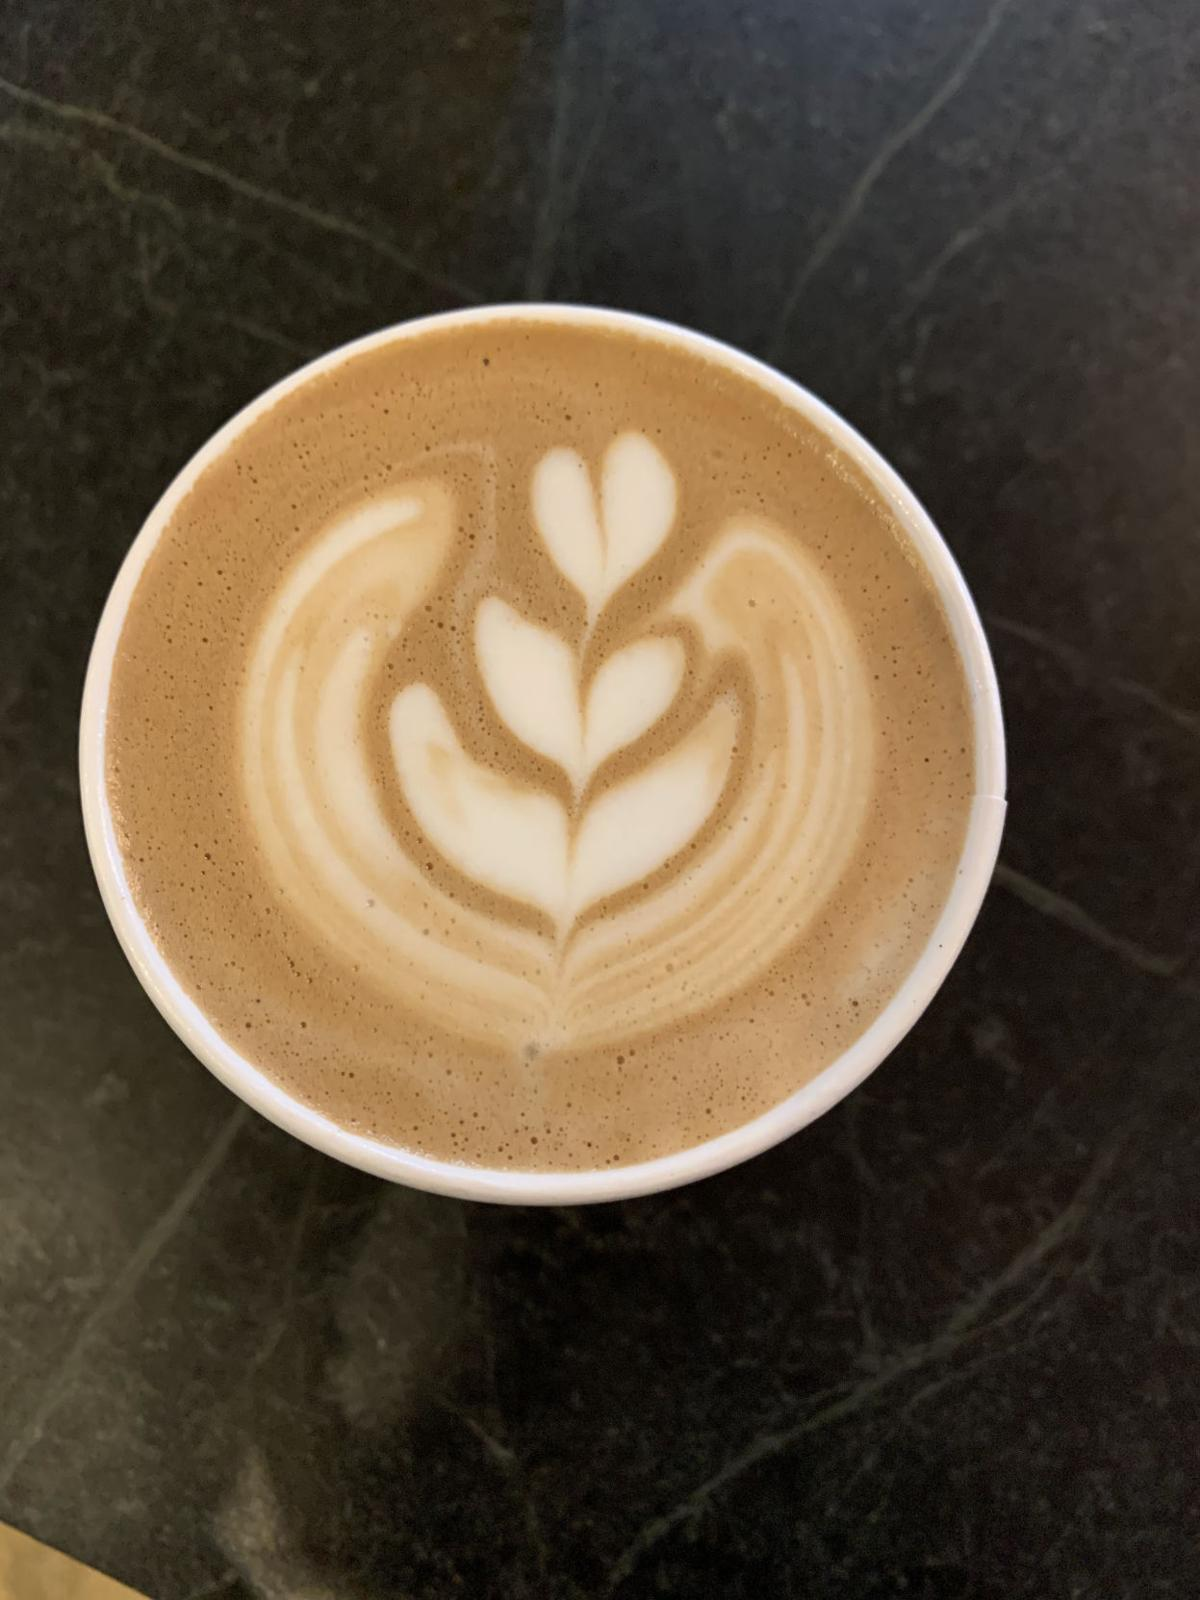 'It's the coffee that's special' at Khepera